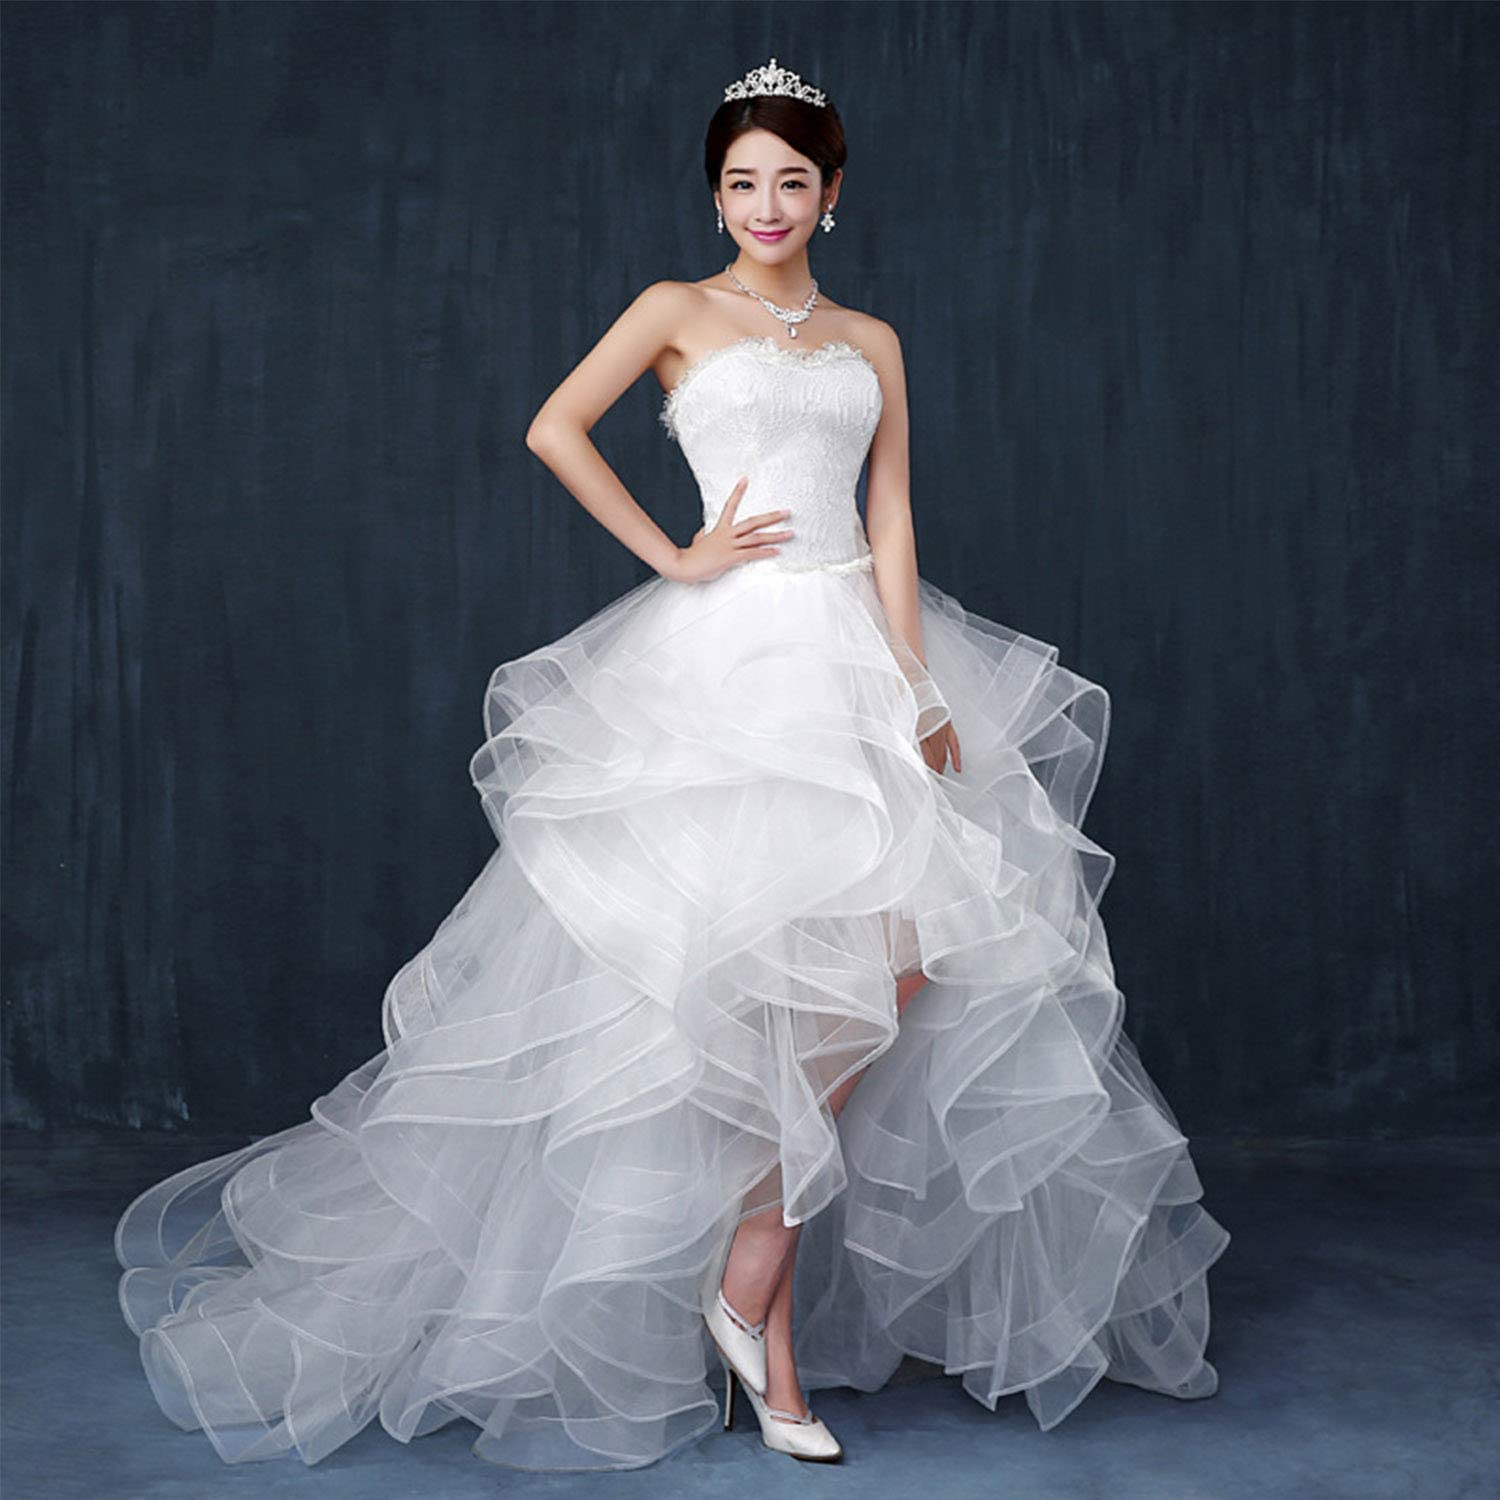 Elegant Simple Wedding Dresses for Bride,White Irregular Backless Long Tailing Dresses Ideal for Ladies Girls Ceremony Evening Party Ball Gowns Use